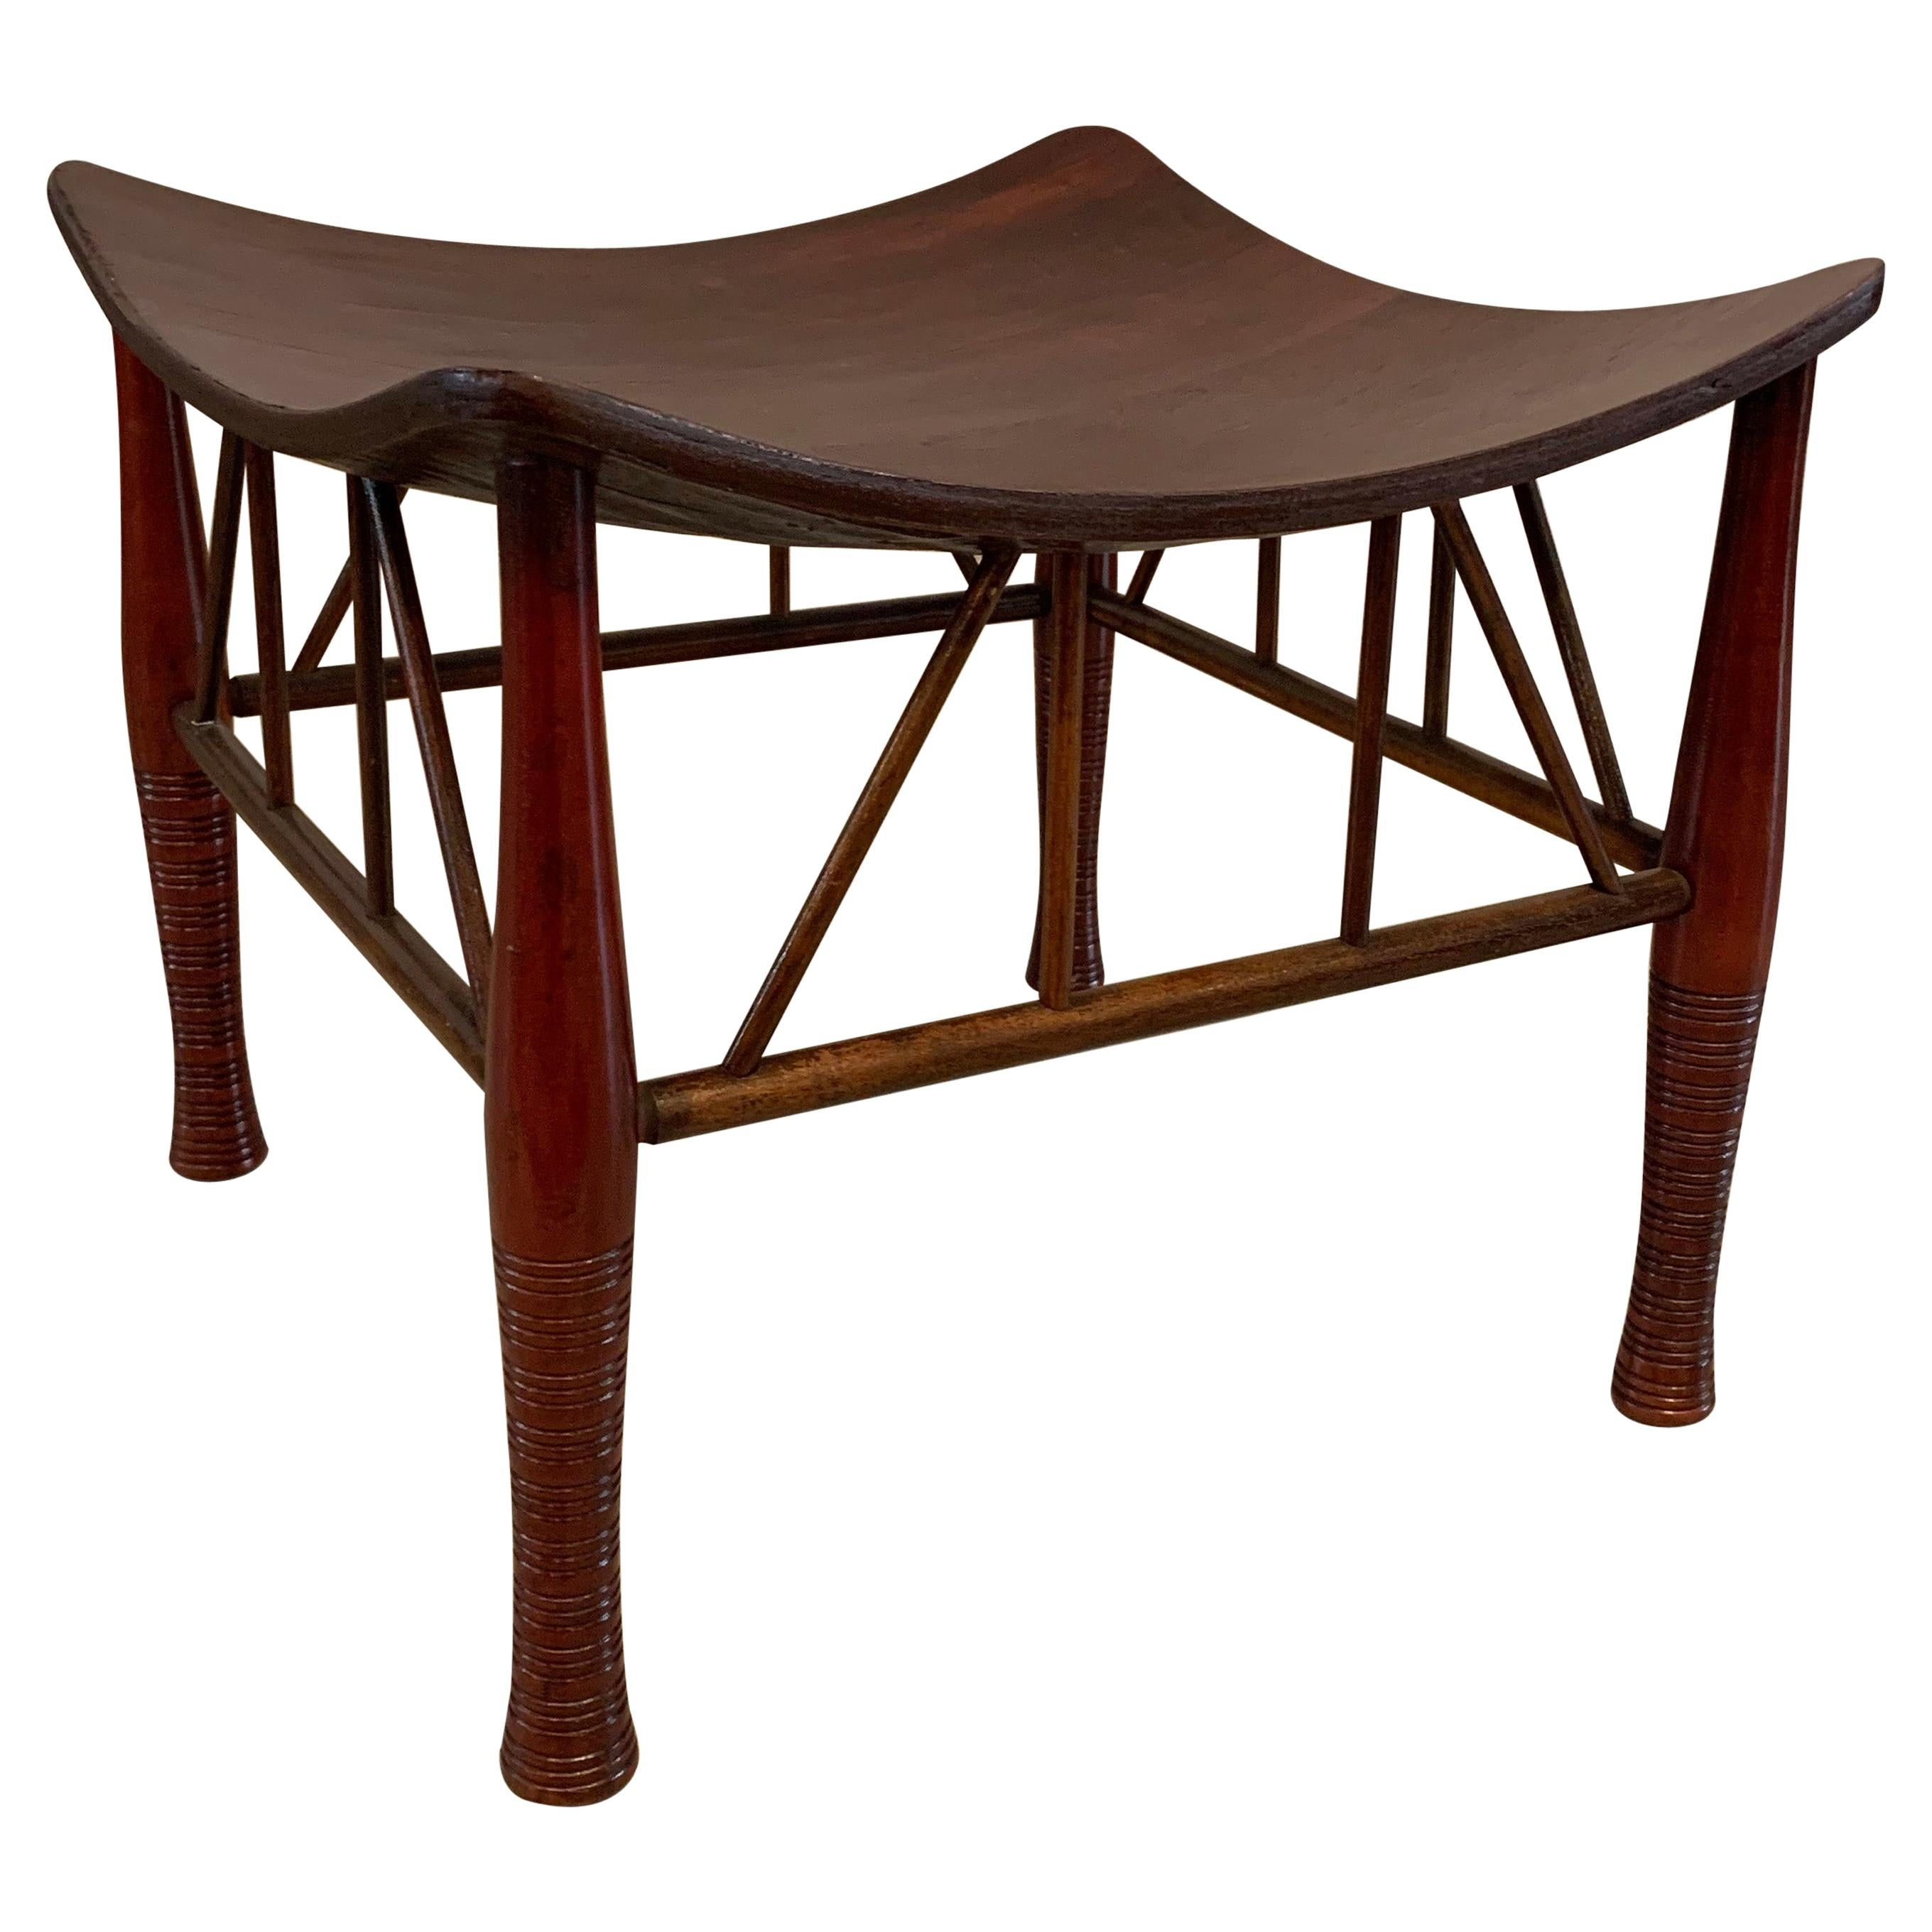 Egyptian Revival Maple Thebes Stool, Liberty & Co.